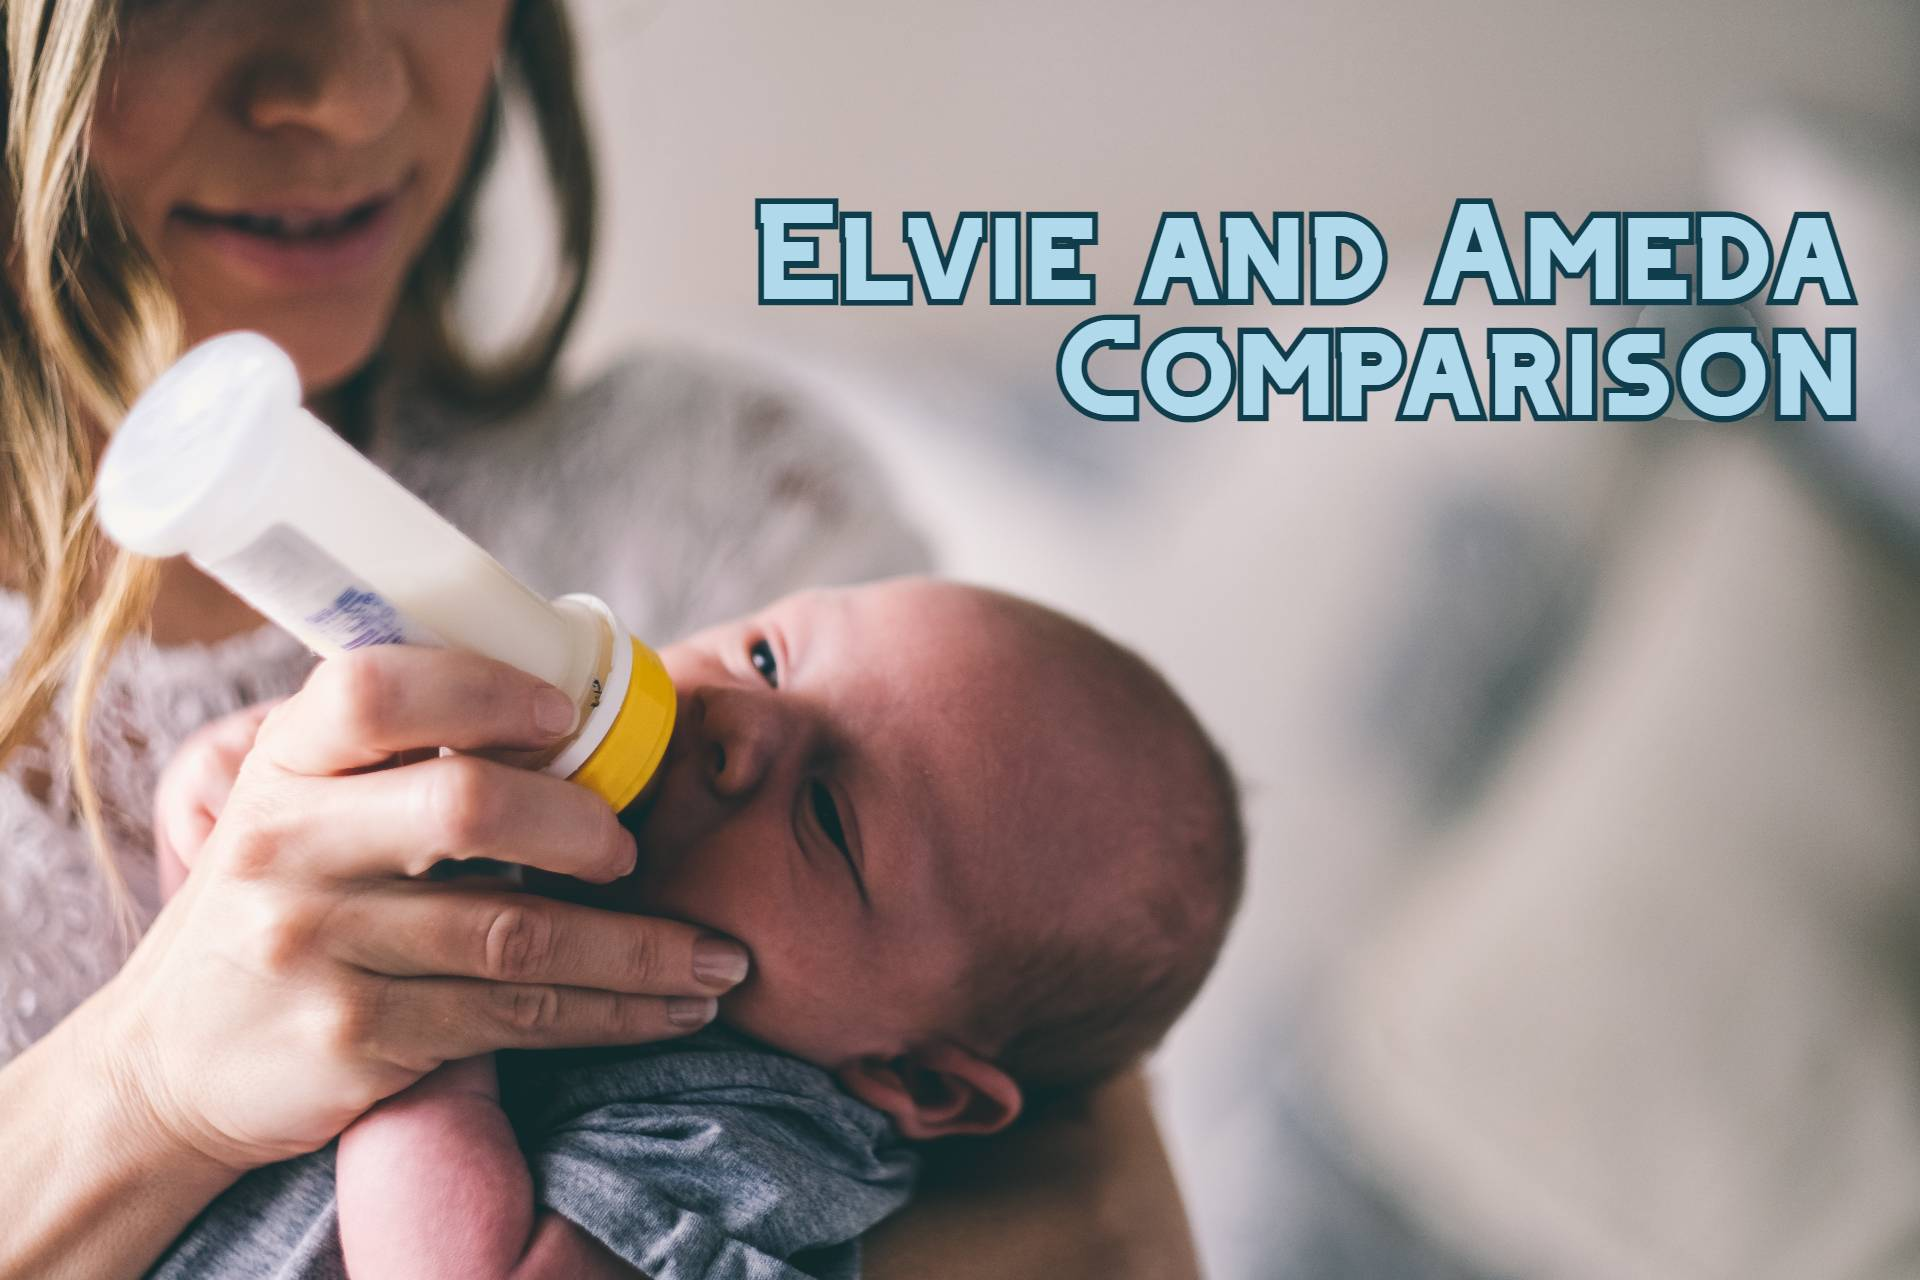 Compare Elvie And Ameda Breast Pumps